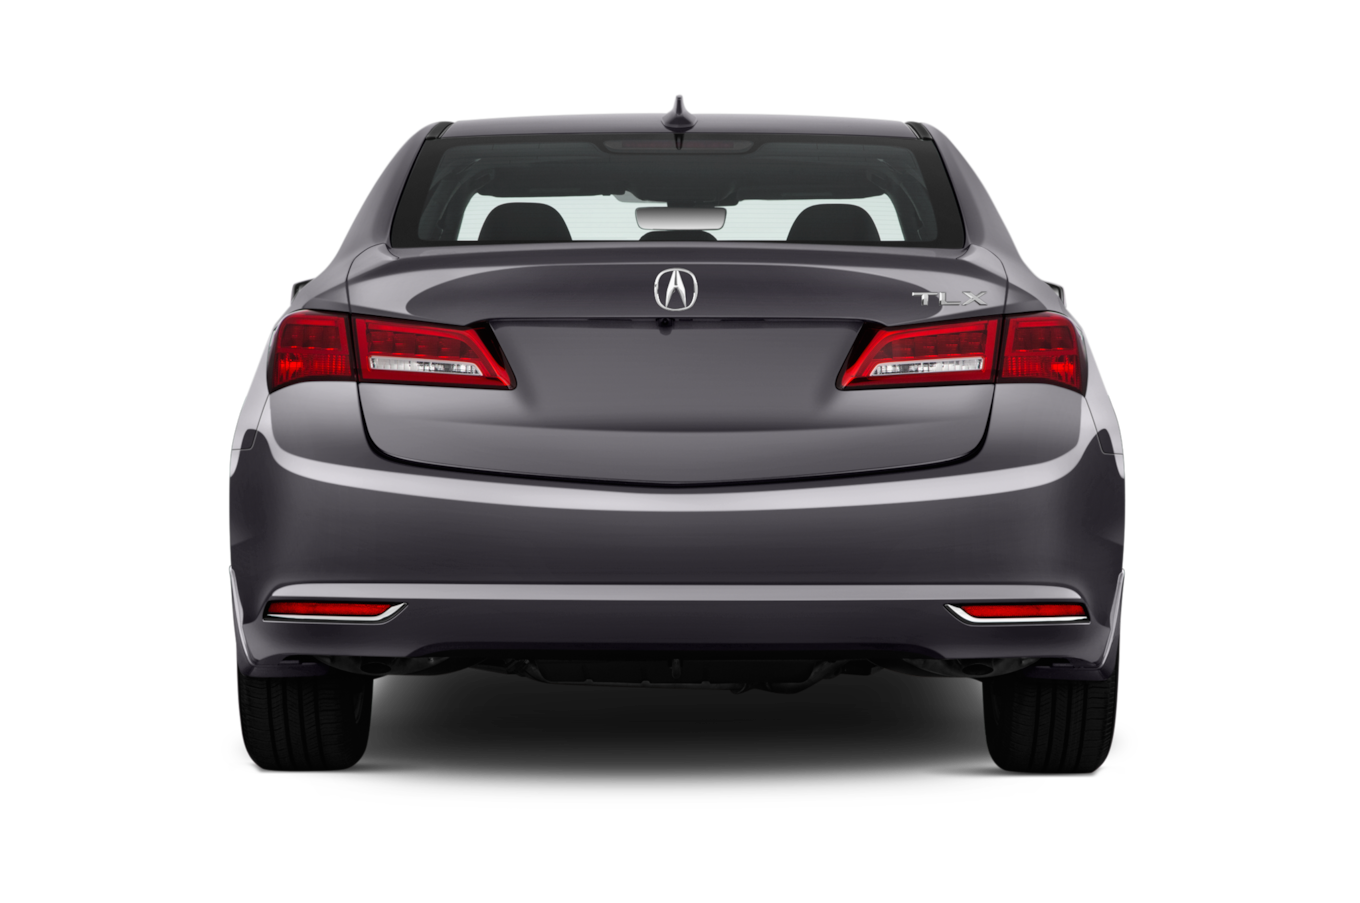 88 All New Acura Tlx 2019 Review Interior Concept with Acura Tlx 2019 Review Interior